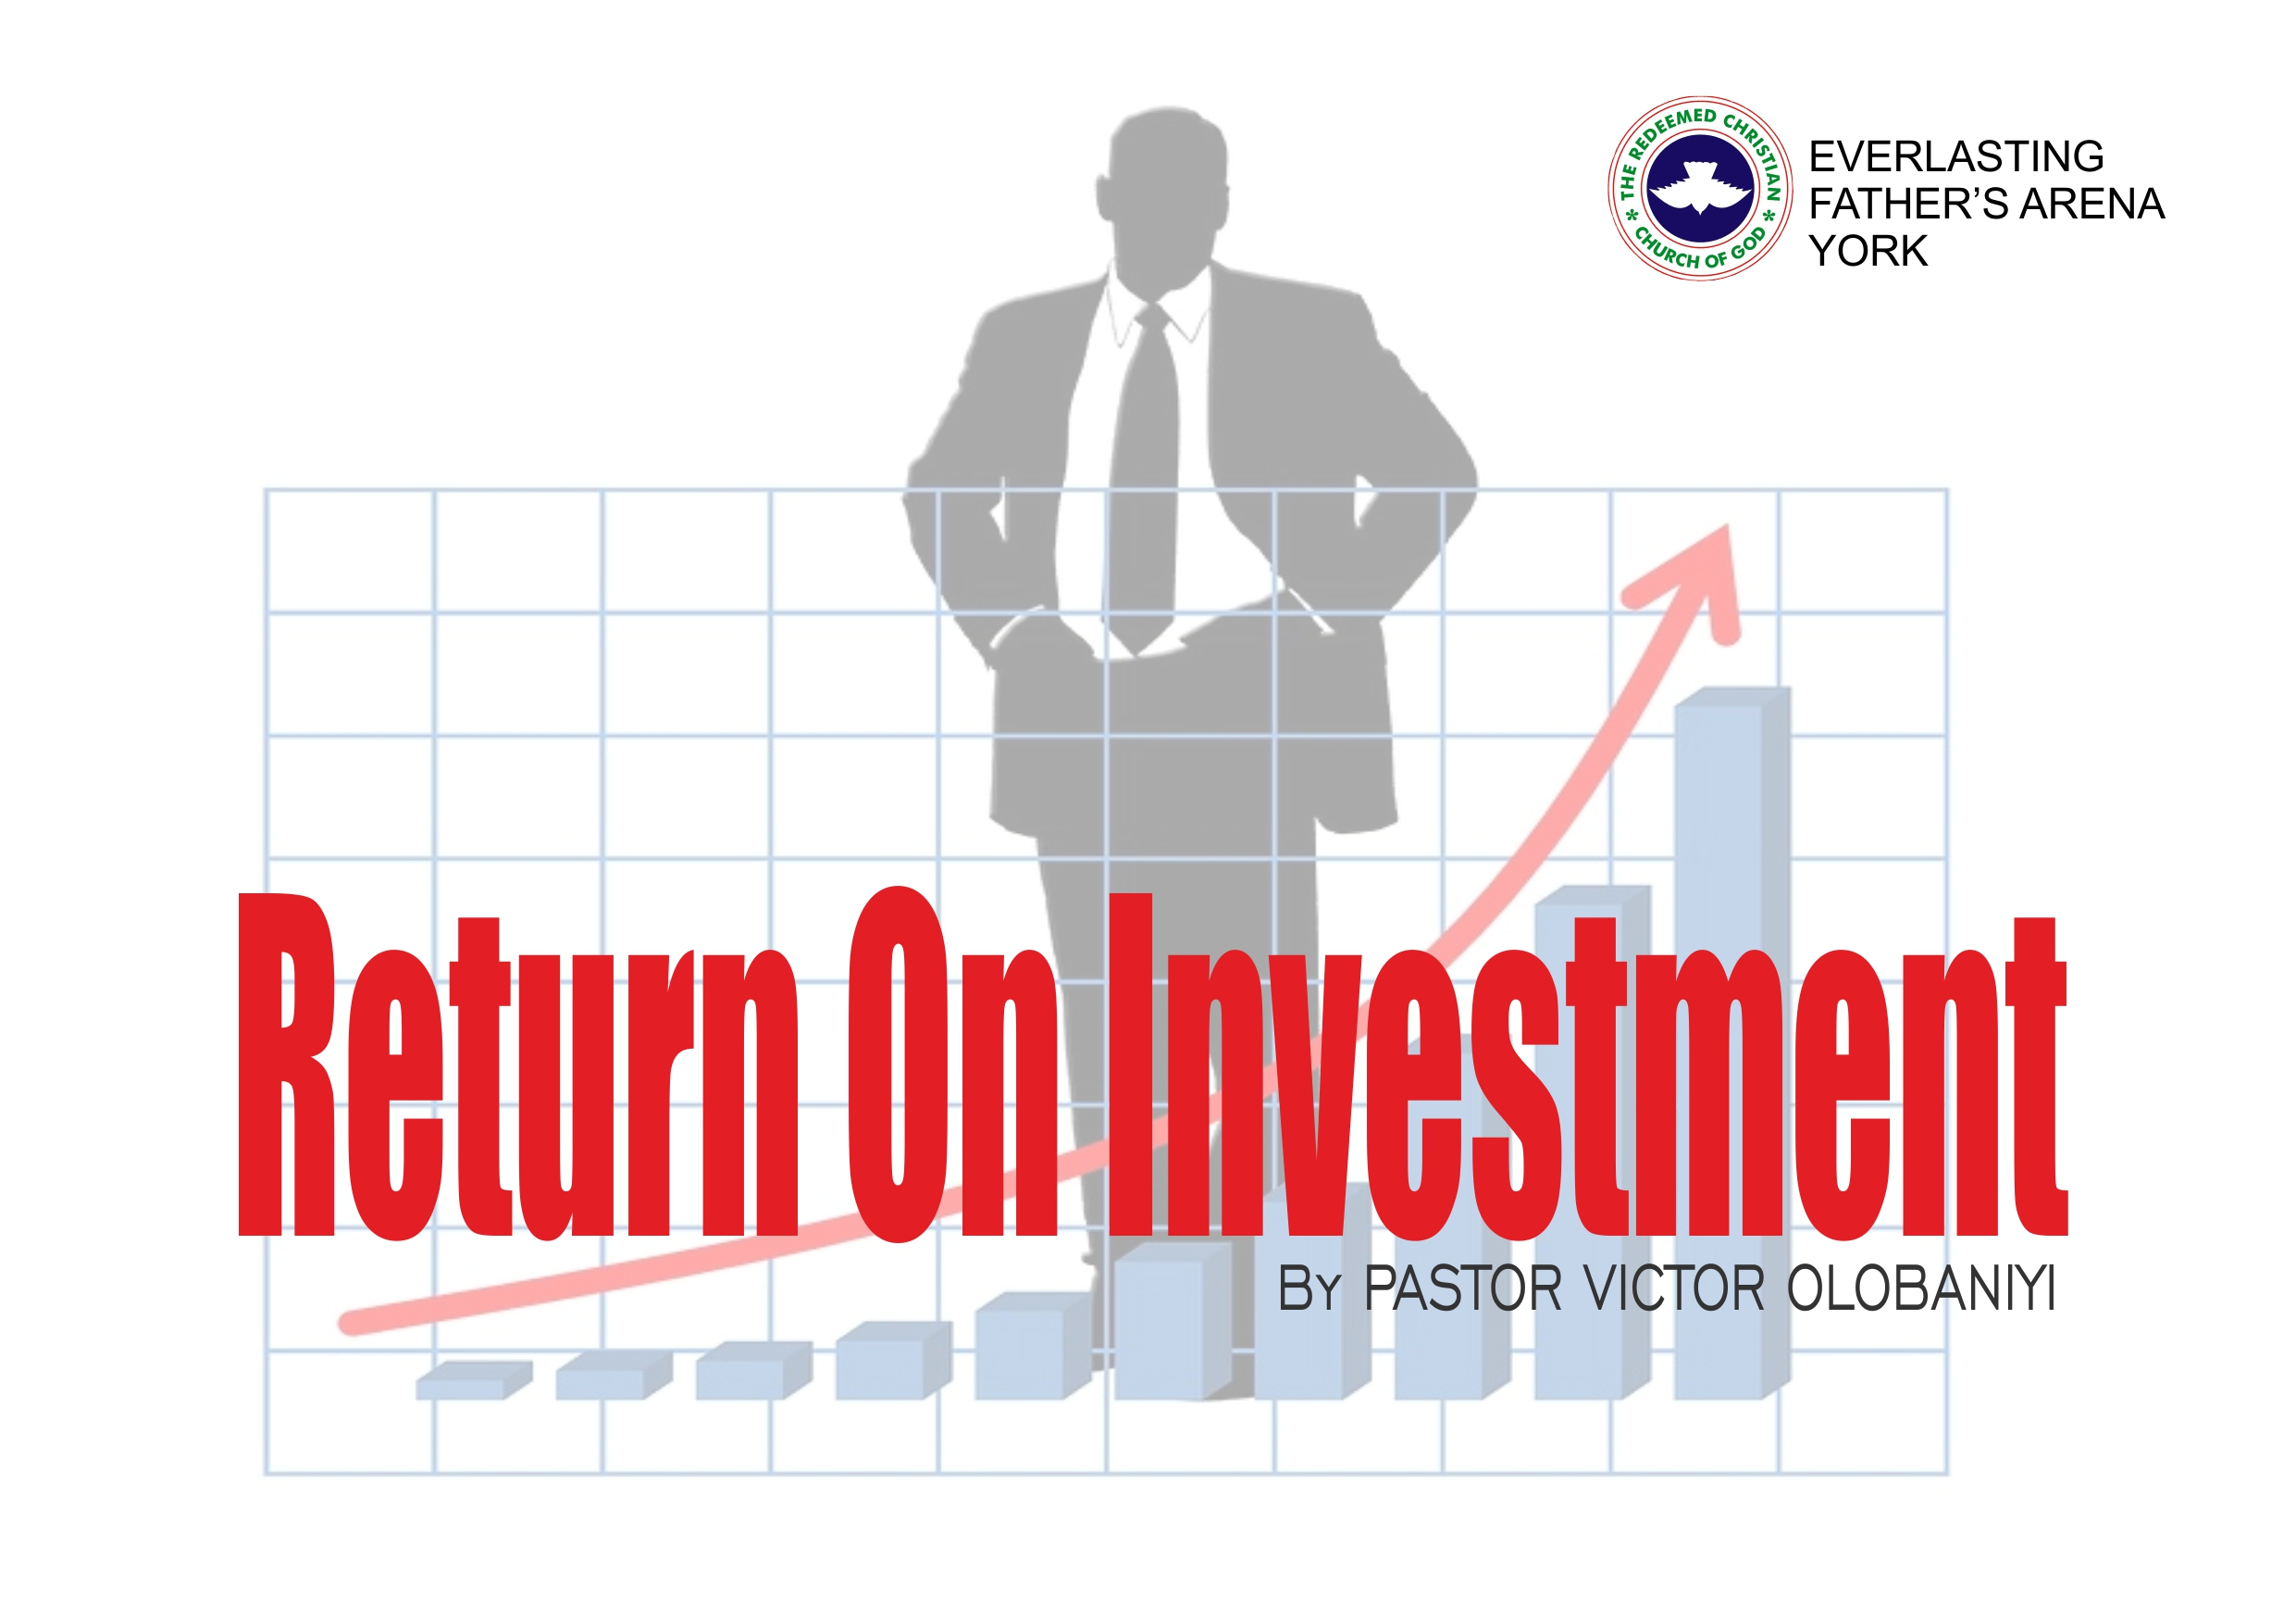 Return on Investment, by Pastor Victor Olobaniyi